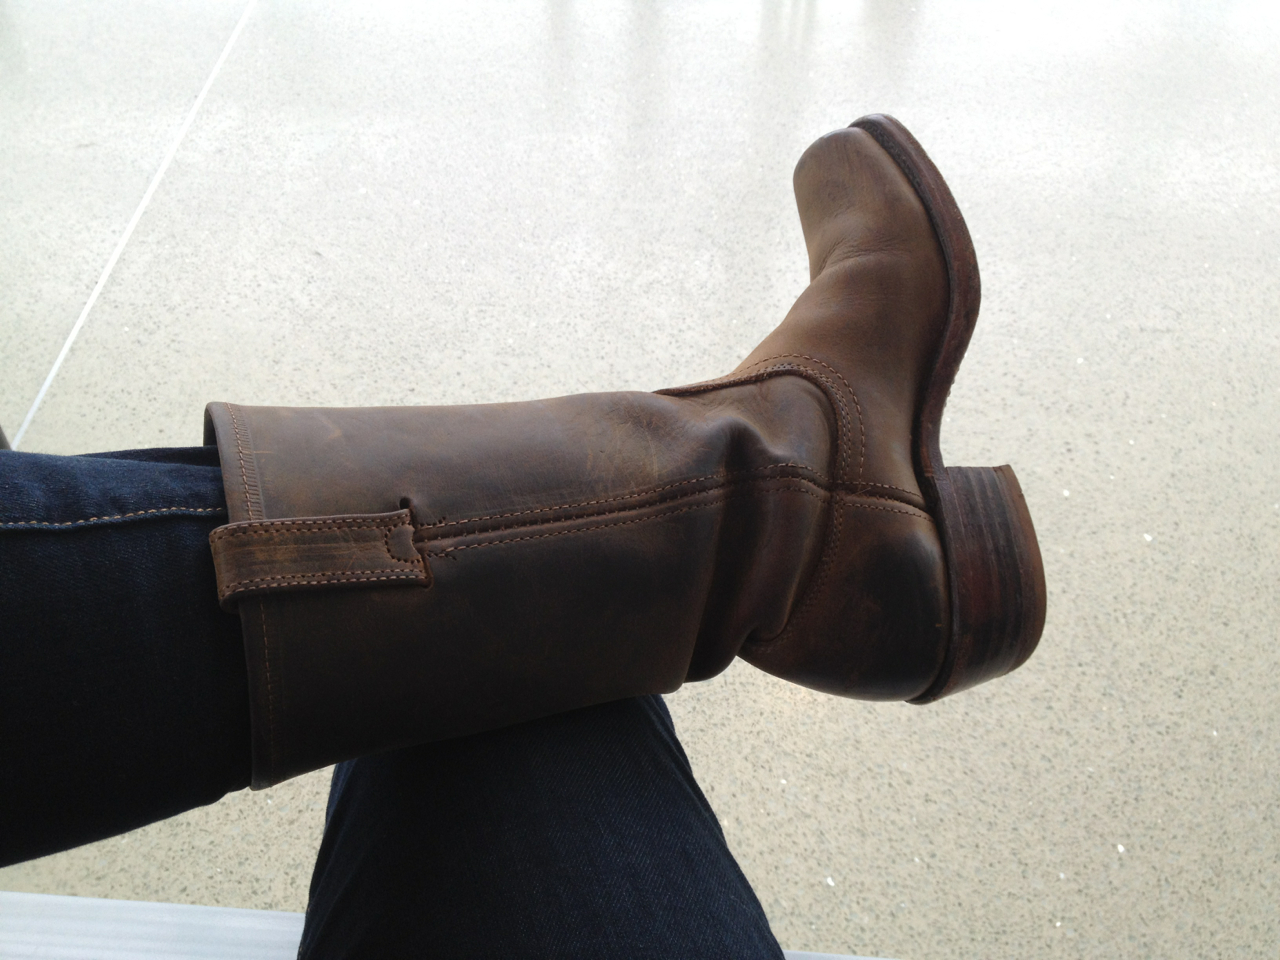 At the airport early (headed back down to London for a brief stop to go to a production of Judas Kiss up in Cambridge). Thinking about my traveling boots. Got into the habit of wearing these in Africa, where they protected me from snakes. Now I often wear them to travel because they slip off for security, and work in all weather. Plus they make me much taller, which sometimes is a nice feeling in a new place.